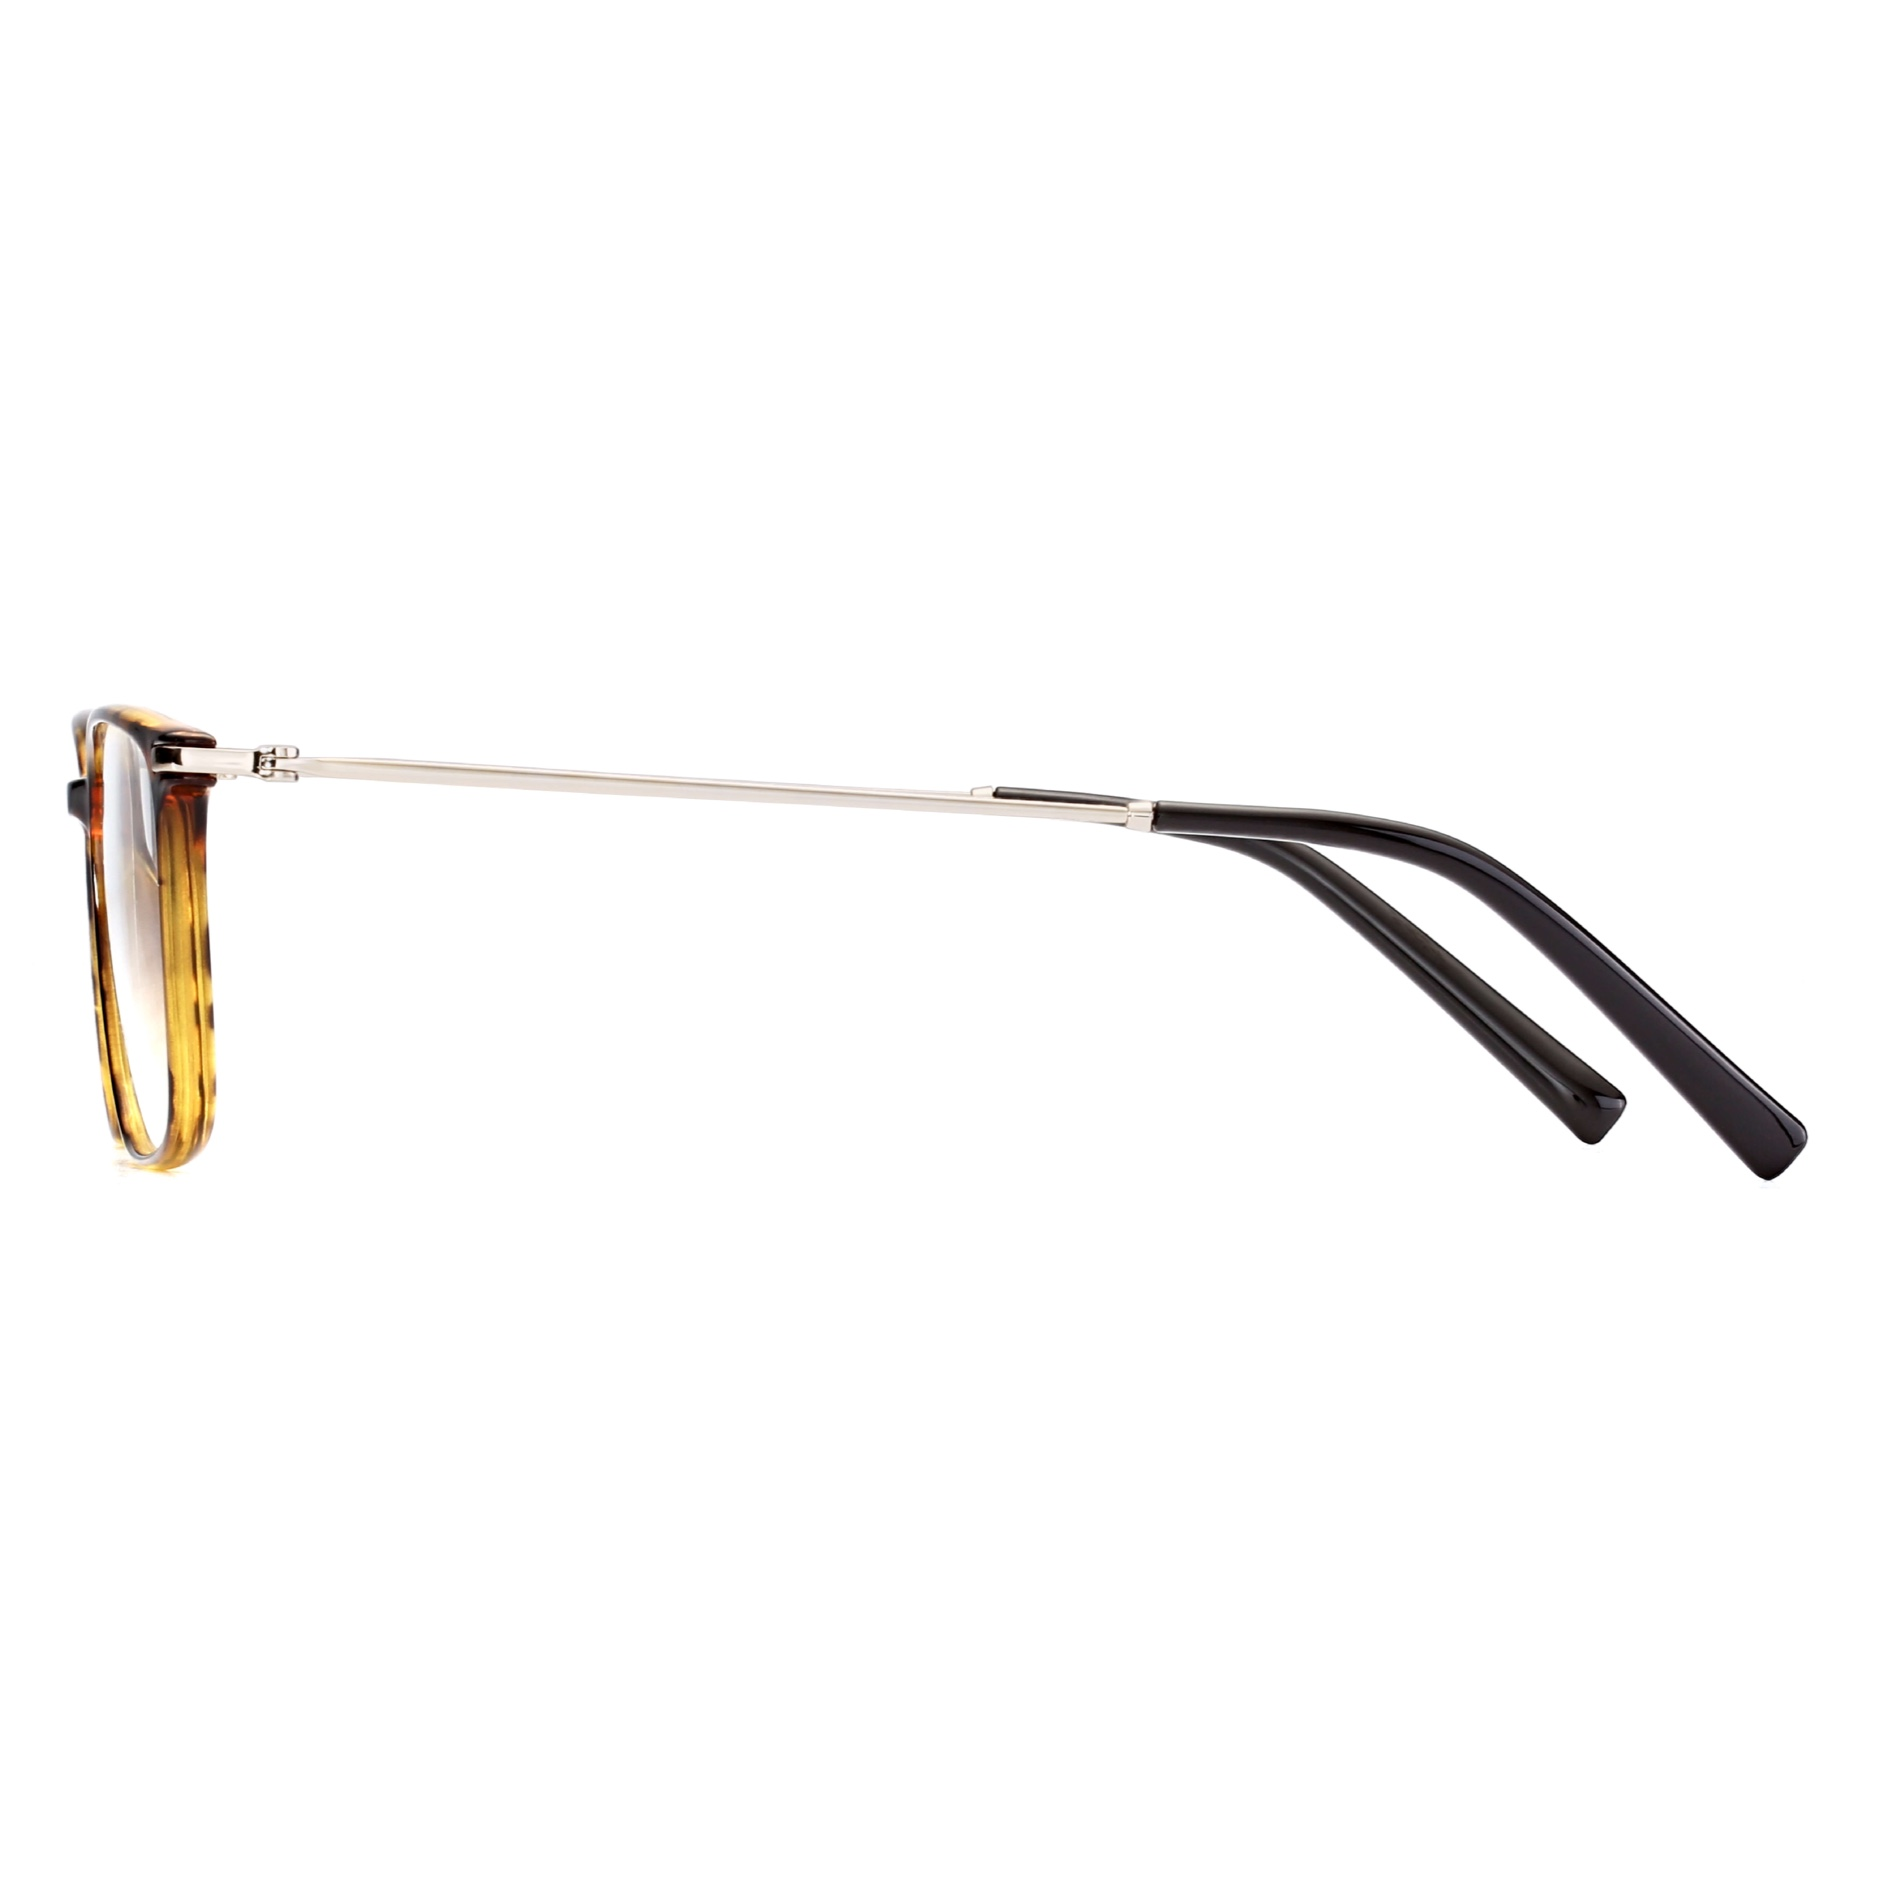 Lifestyle ß-Plastic Optical Frame Ultralight with Metal Temple Manufacturers, Lifestyle ß-Plastic Optical Frame Ultralight with Metal Temple Factory, Supply Lifestyle ß-Plastic Optical Frame Ultralight with Metal Temple